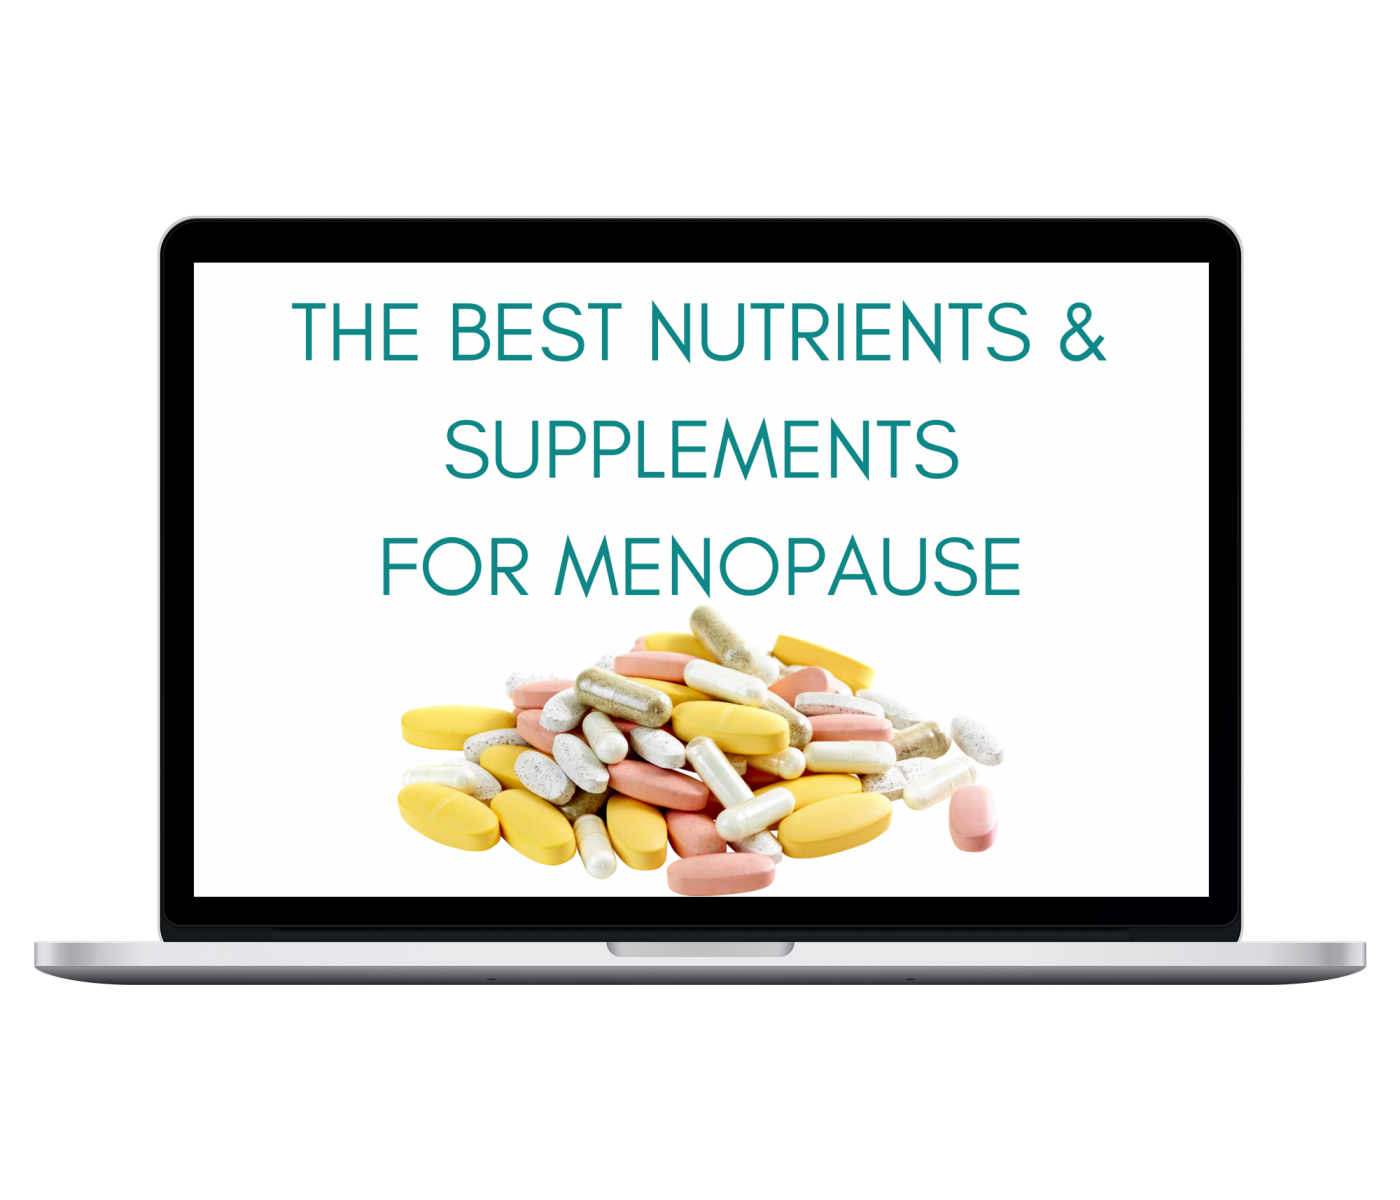 THE BEST SUPPLEMENTS FOR MENOPAUSE-3_macbookpro15_front